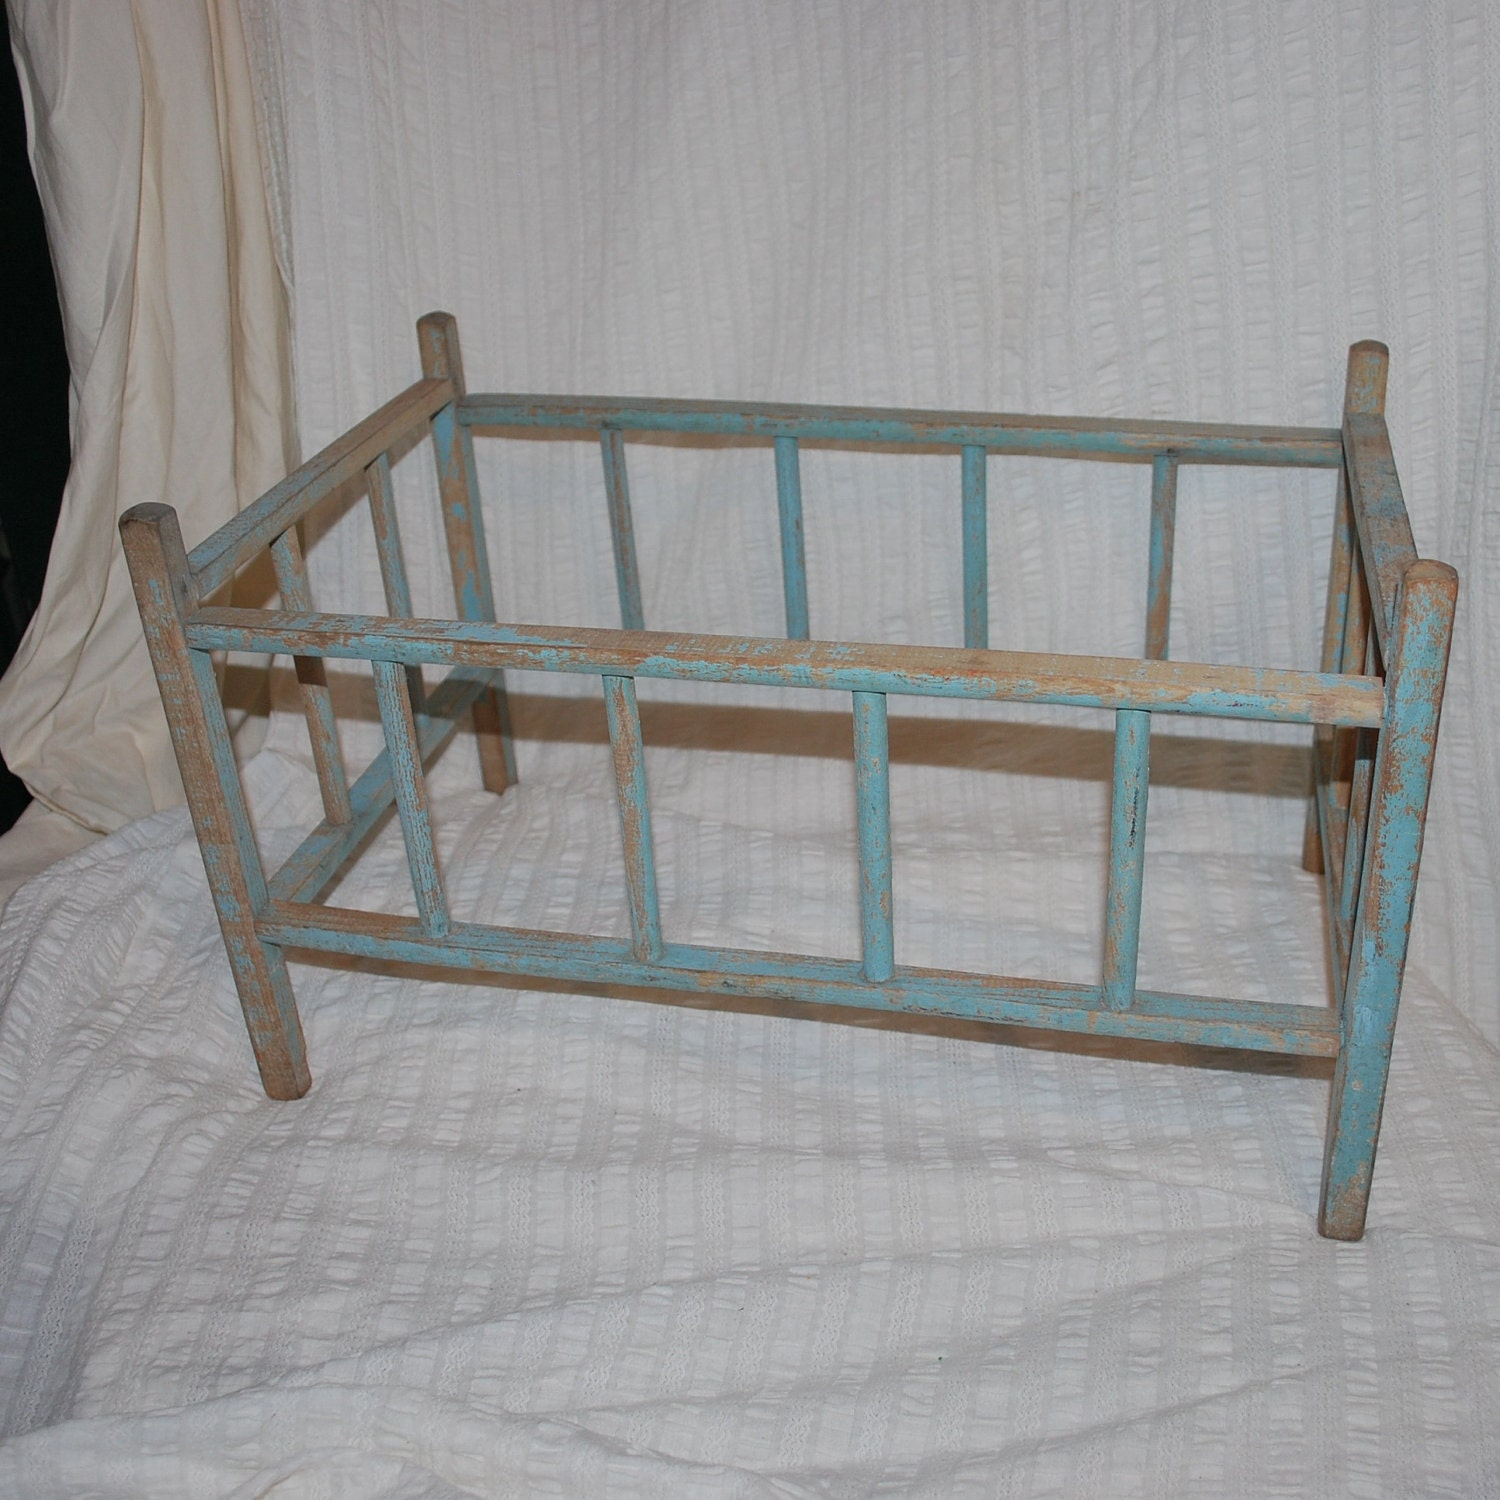 Antique Or Vintage Baby Doll Bed Very Rustic Primitive Looking